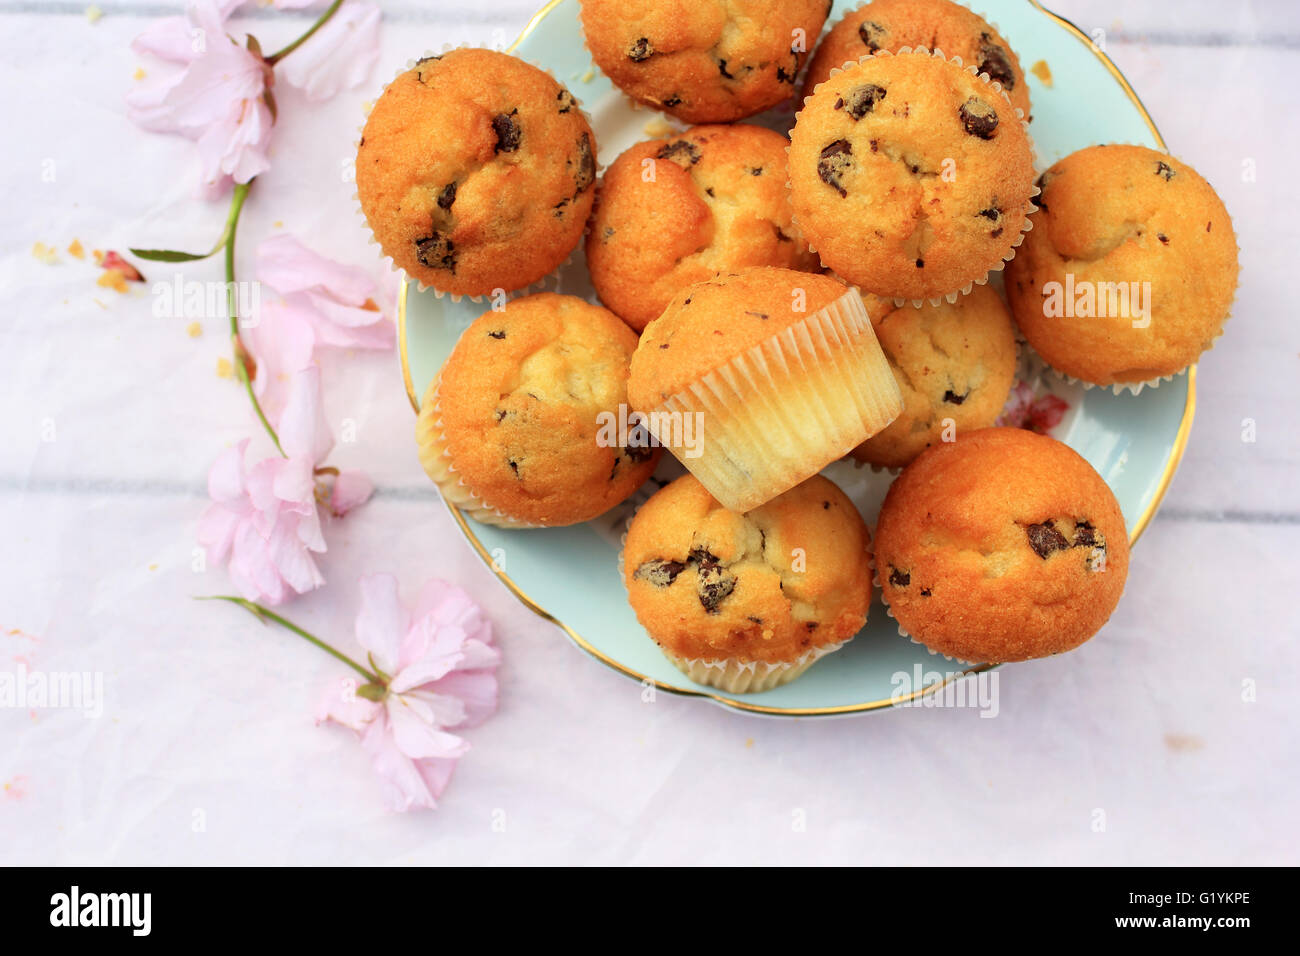 Rustic wooden breakfast background with bluberries, fresh muffins and blooming cherry flowers - Stock Image